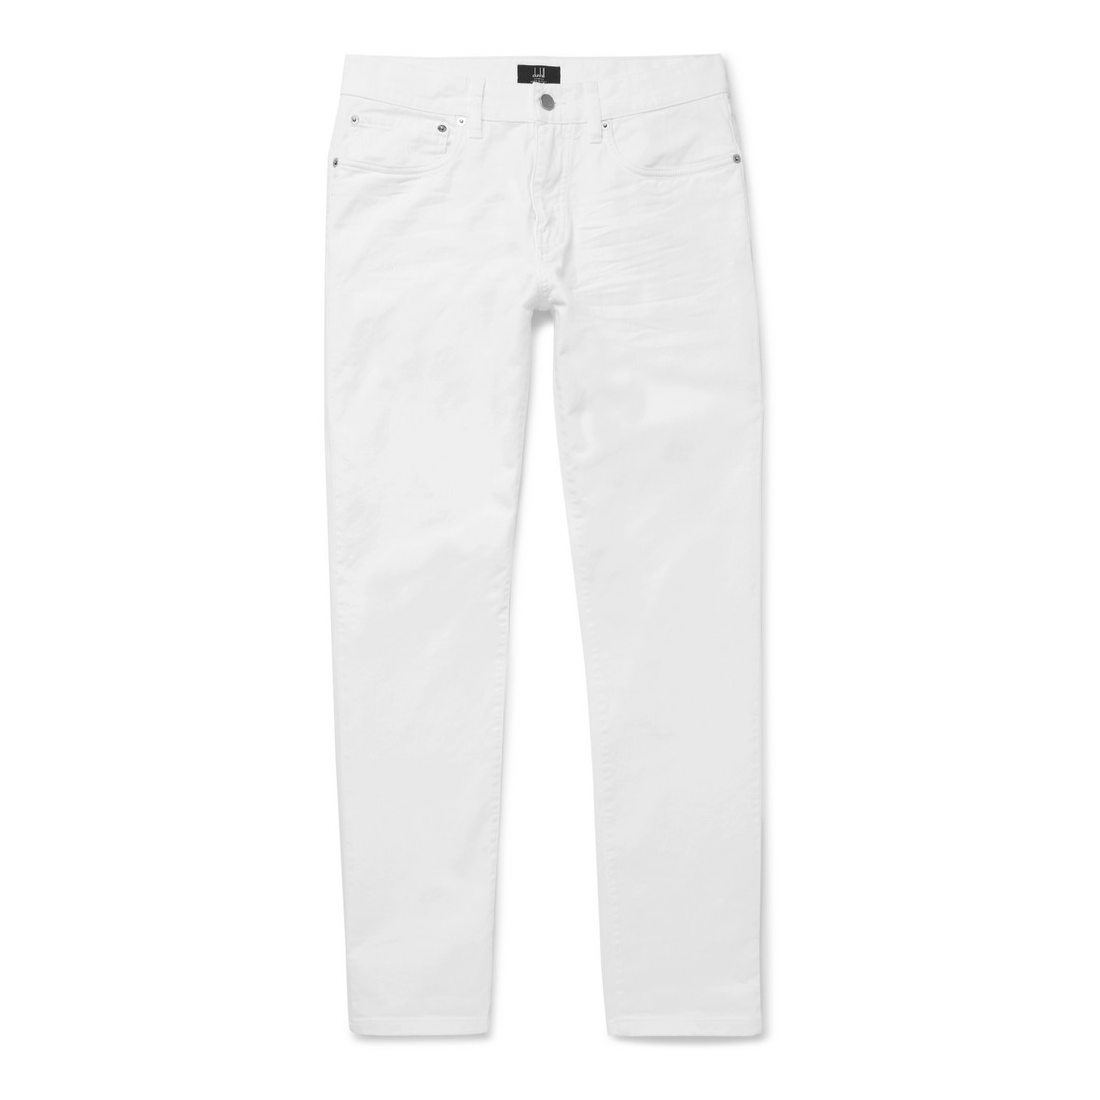 How To Wear White Jeans.